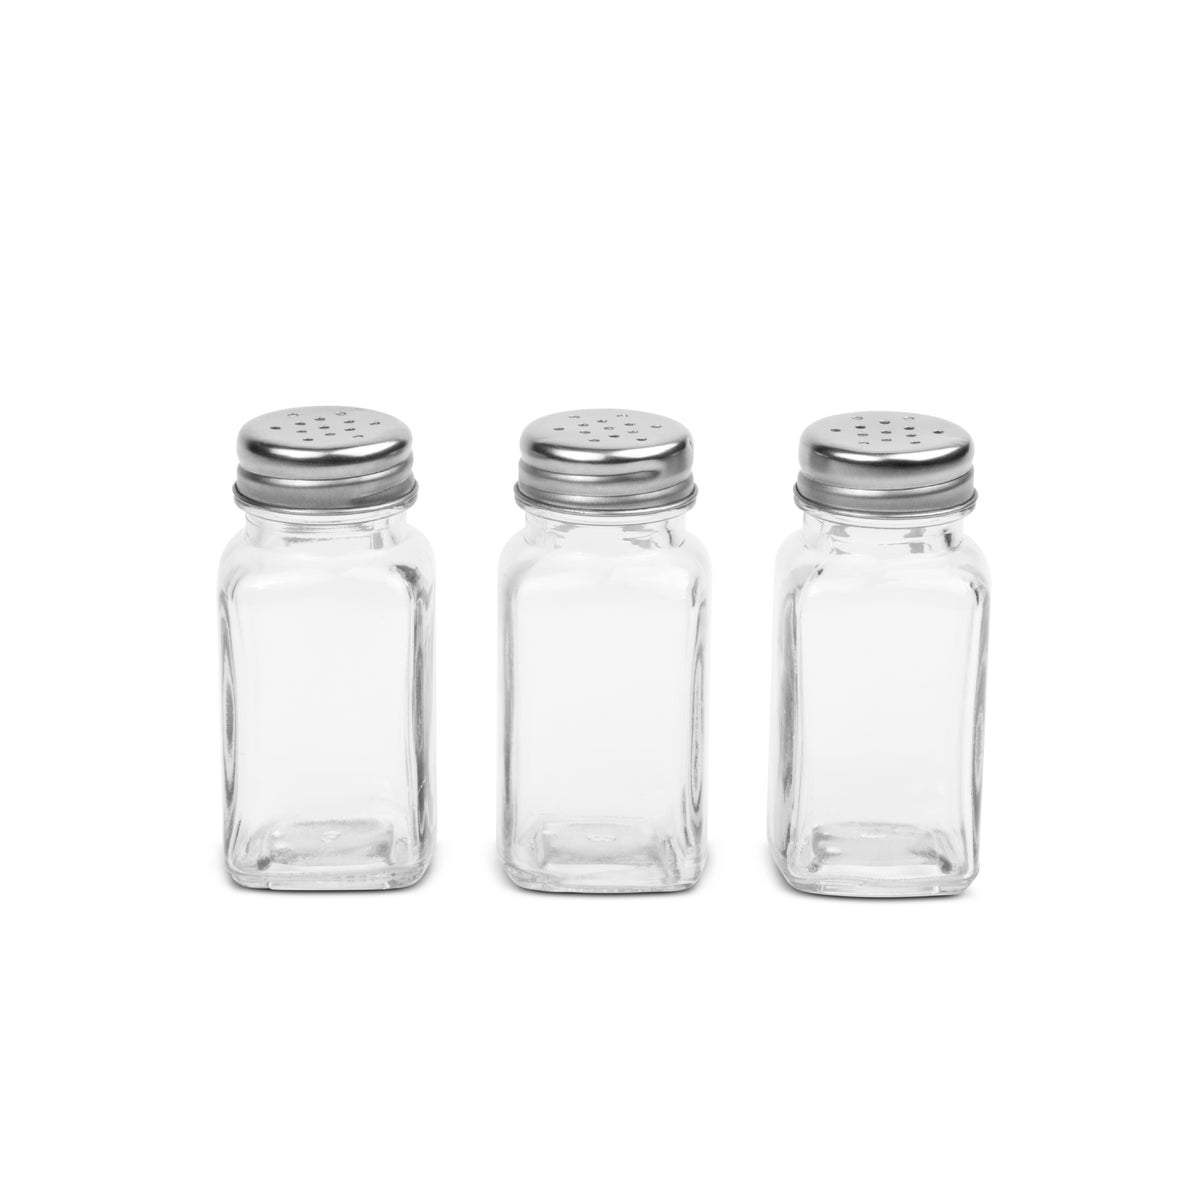 EspressoWorks Spice Glass Shaker 3 Piece Set